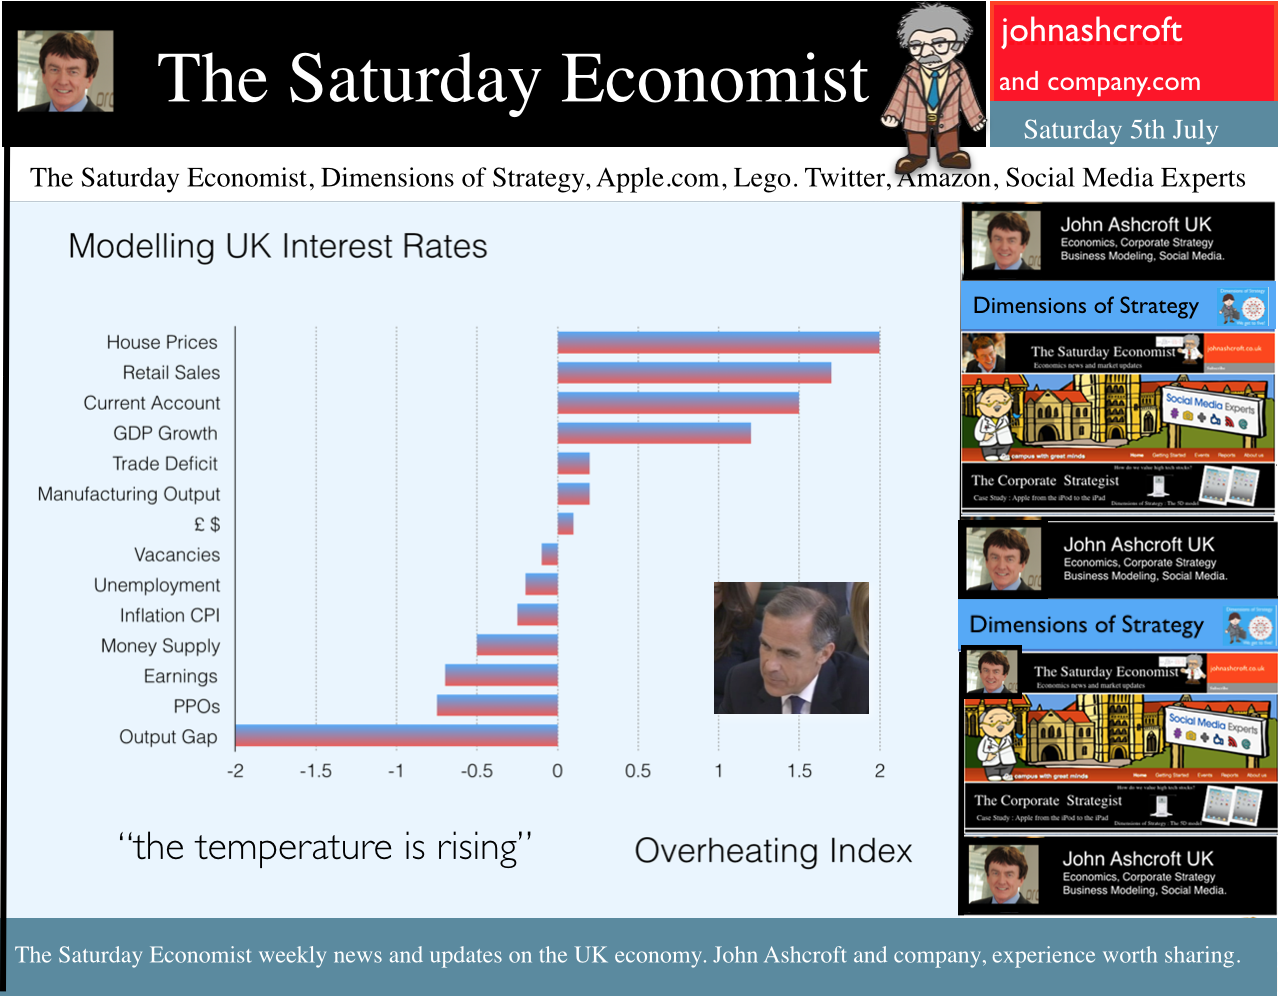 The Saturday Economist, when will rates rise, Check out the overheating index!